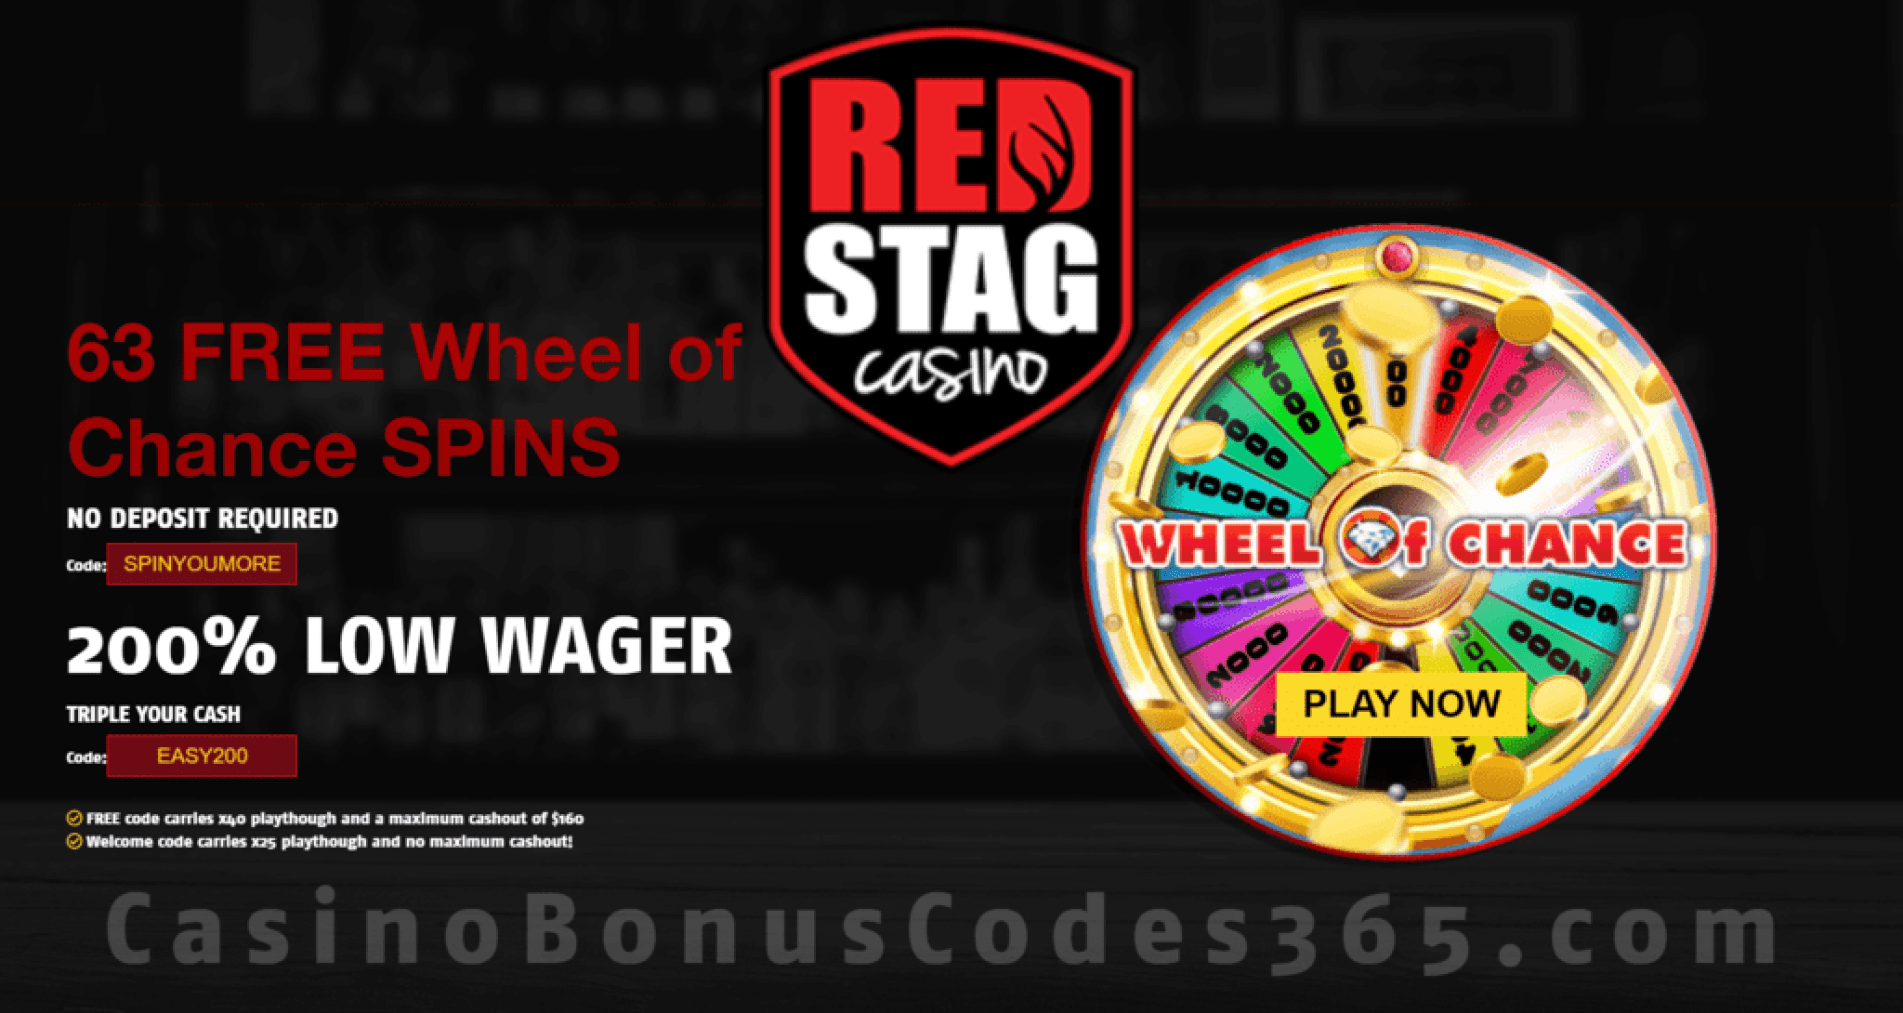 Red Stag Casino 63 FREE Wheel of WGS Chance Spins Special Offer